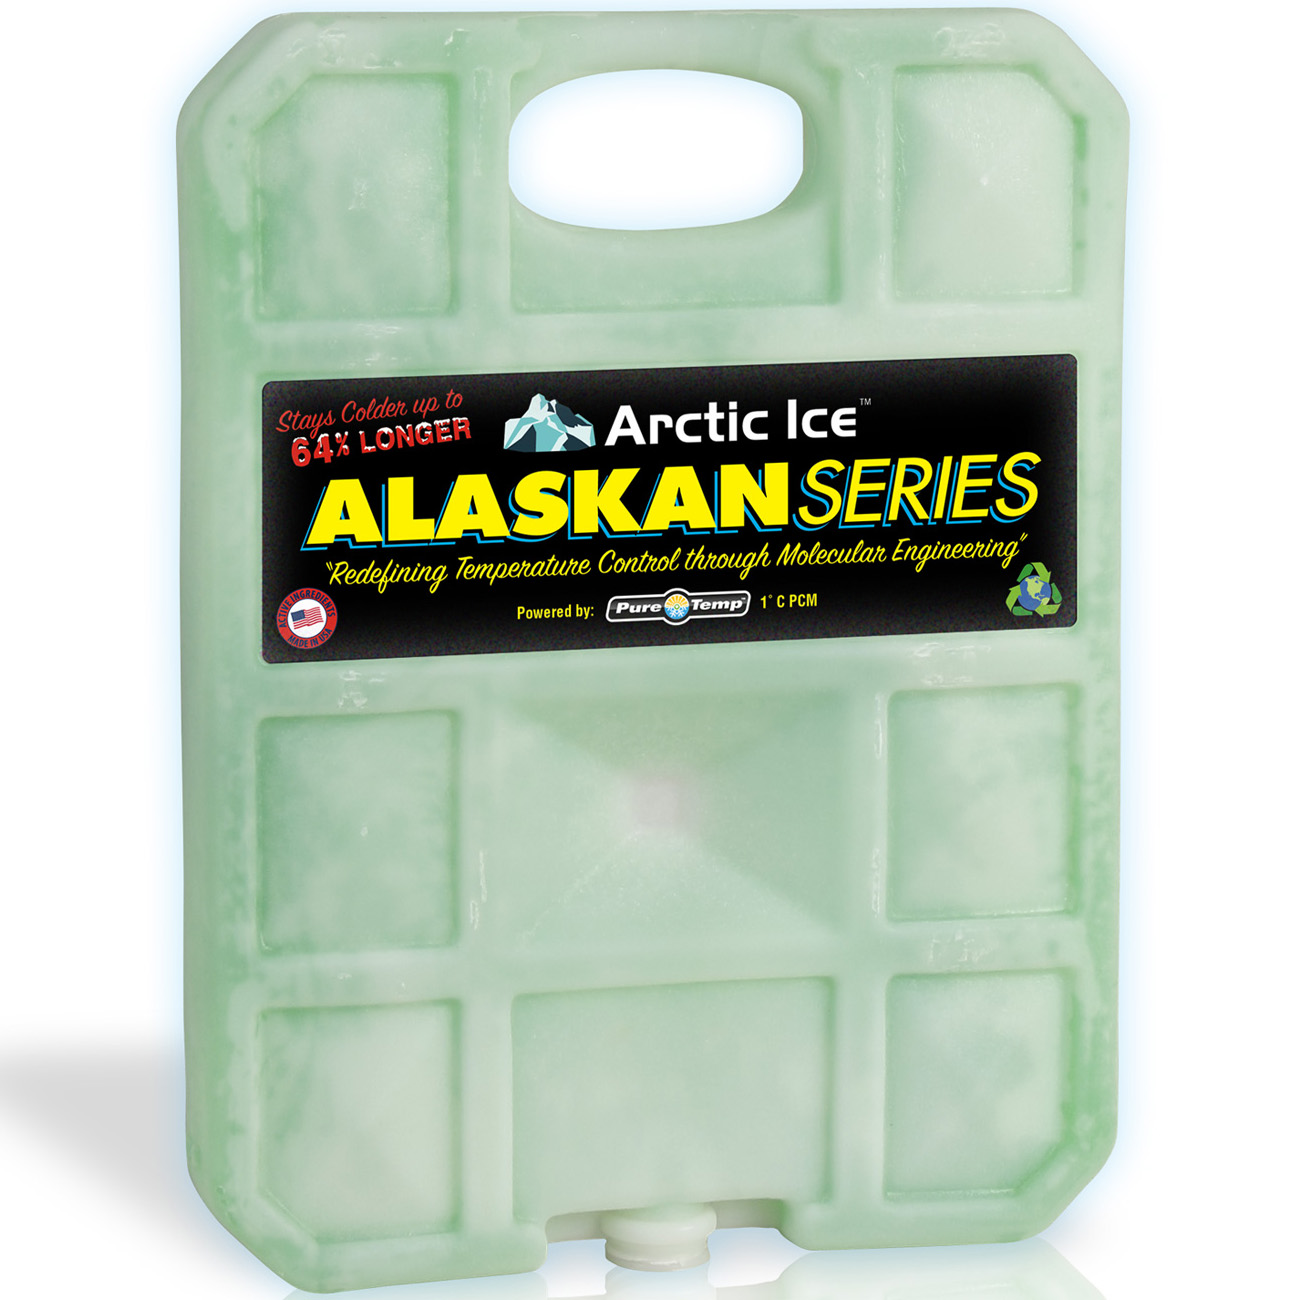 Arctic Ice 5 lb Alaskan Series Reusable Ice Pack